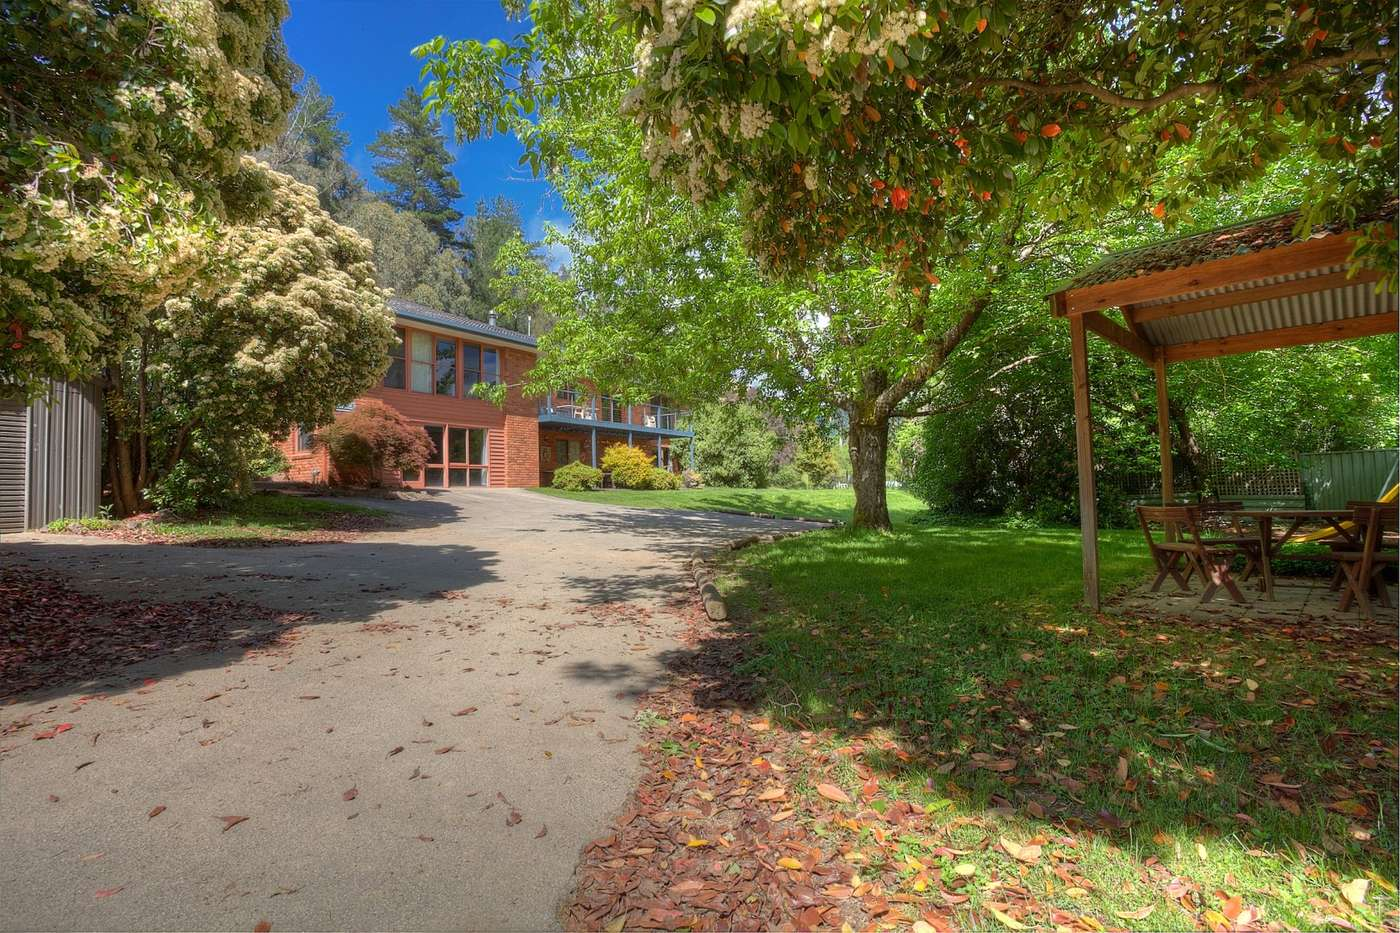 Main view of Homely house listing, 90 Delany Avenue, Bright, VIC 3741